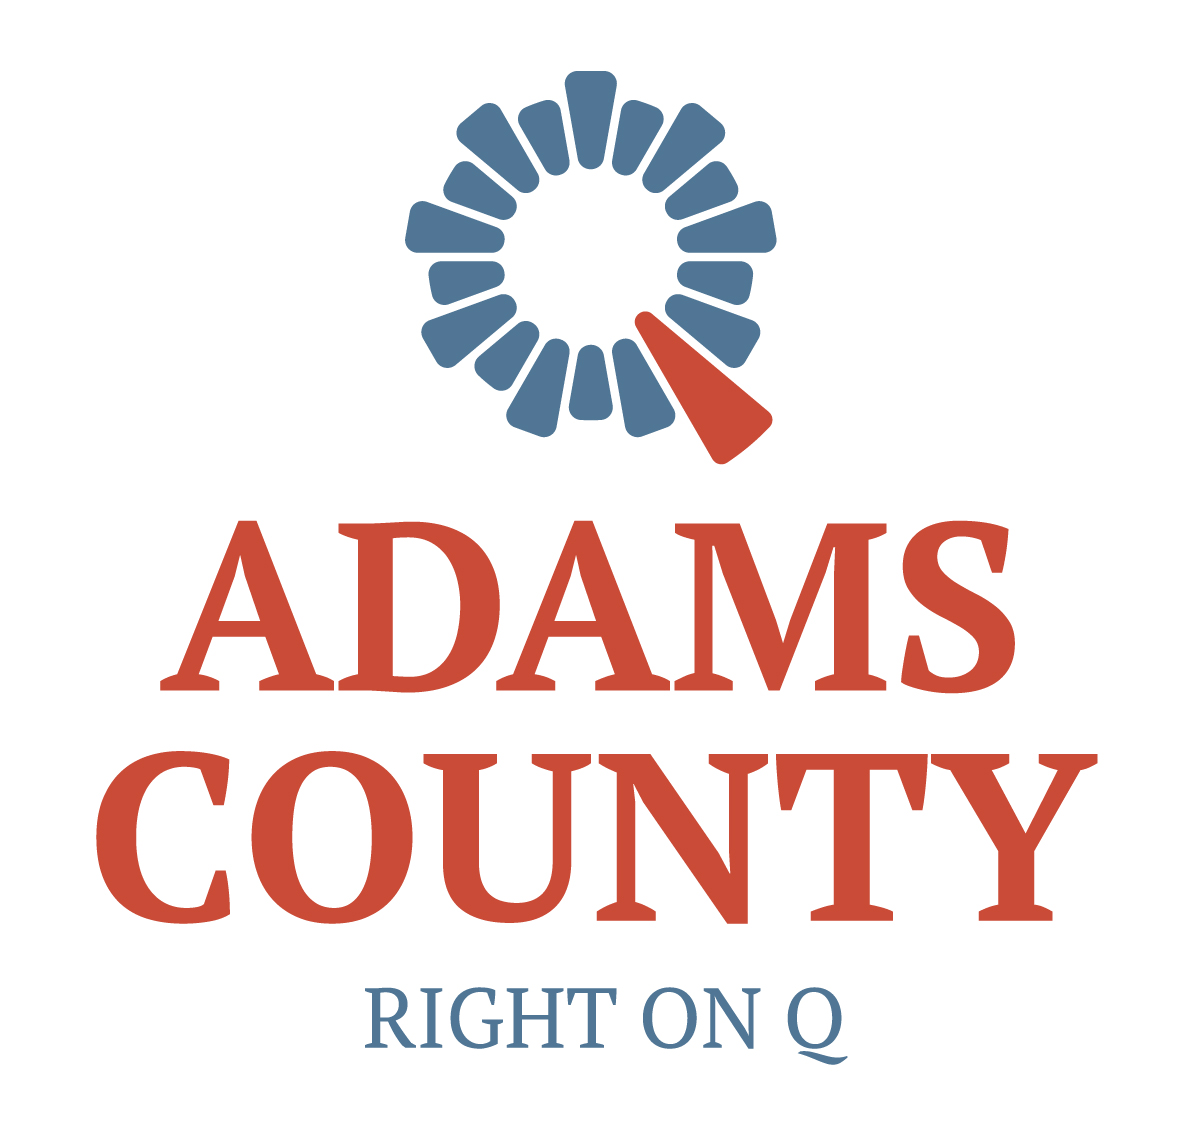 Adams County Small Business Emergency Loan